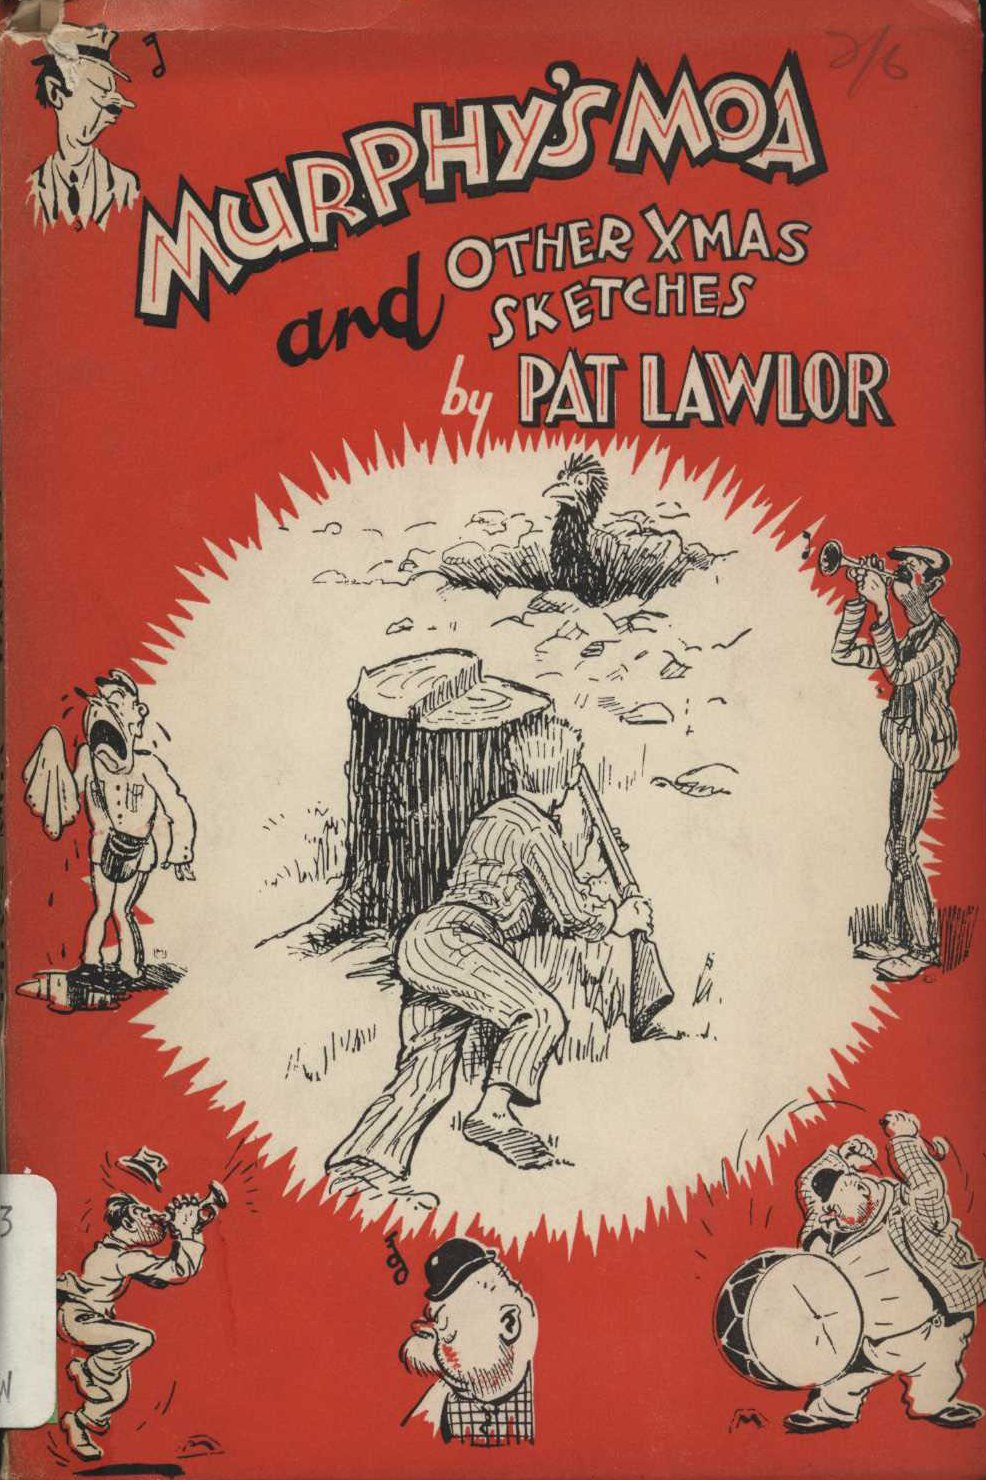 Pat Lawlor. Murphy's moa and other Xmas sketches. Illustrations by Gordon Minhinnick and Fred Alexander. Christchurch: Simpson & Williams Ltd., 1936.